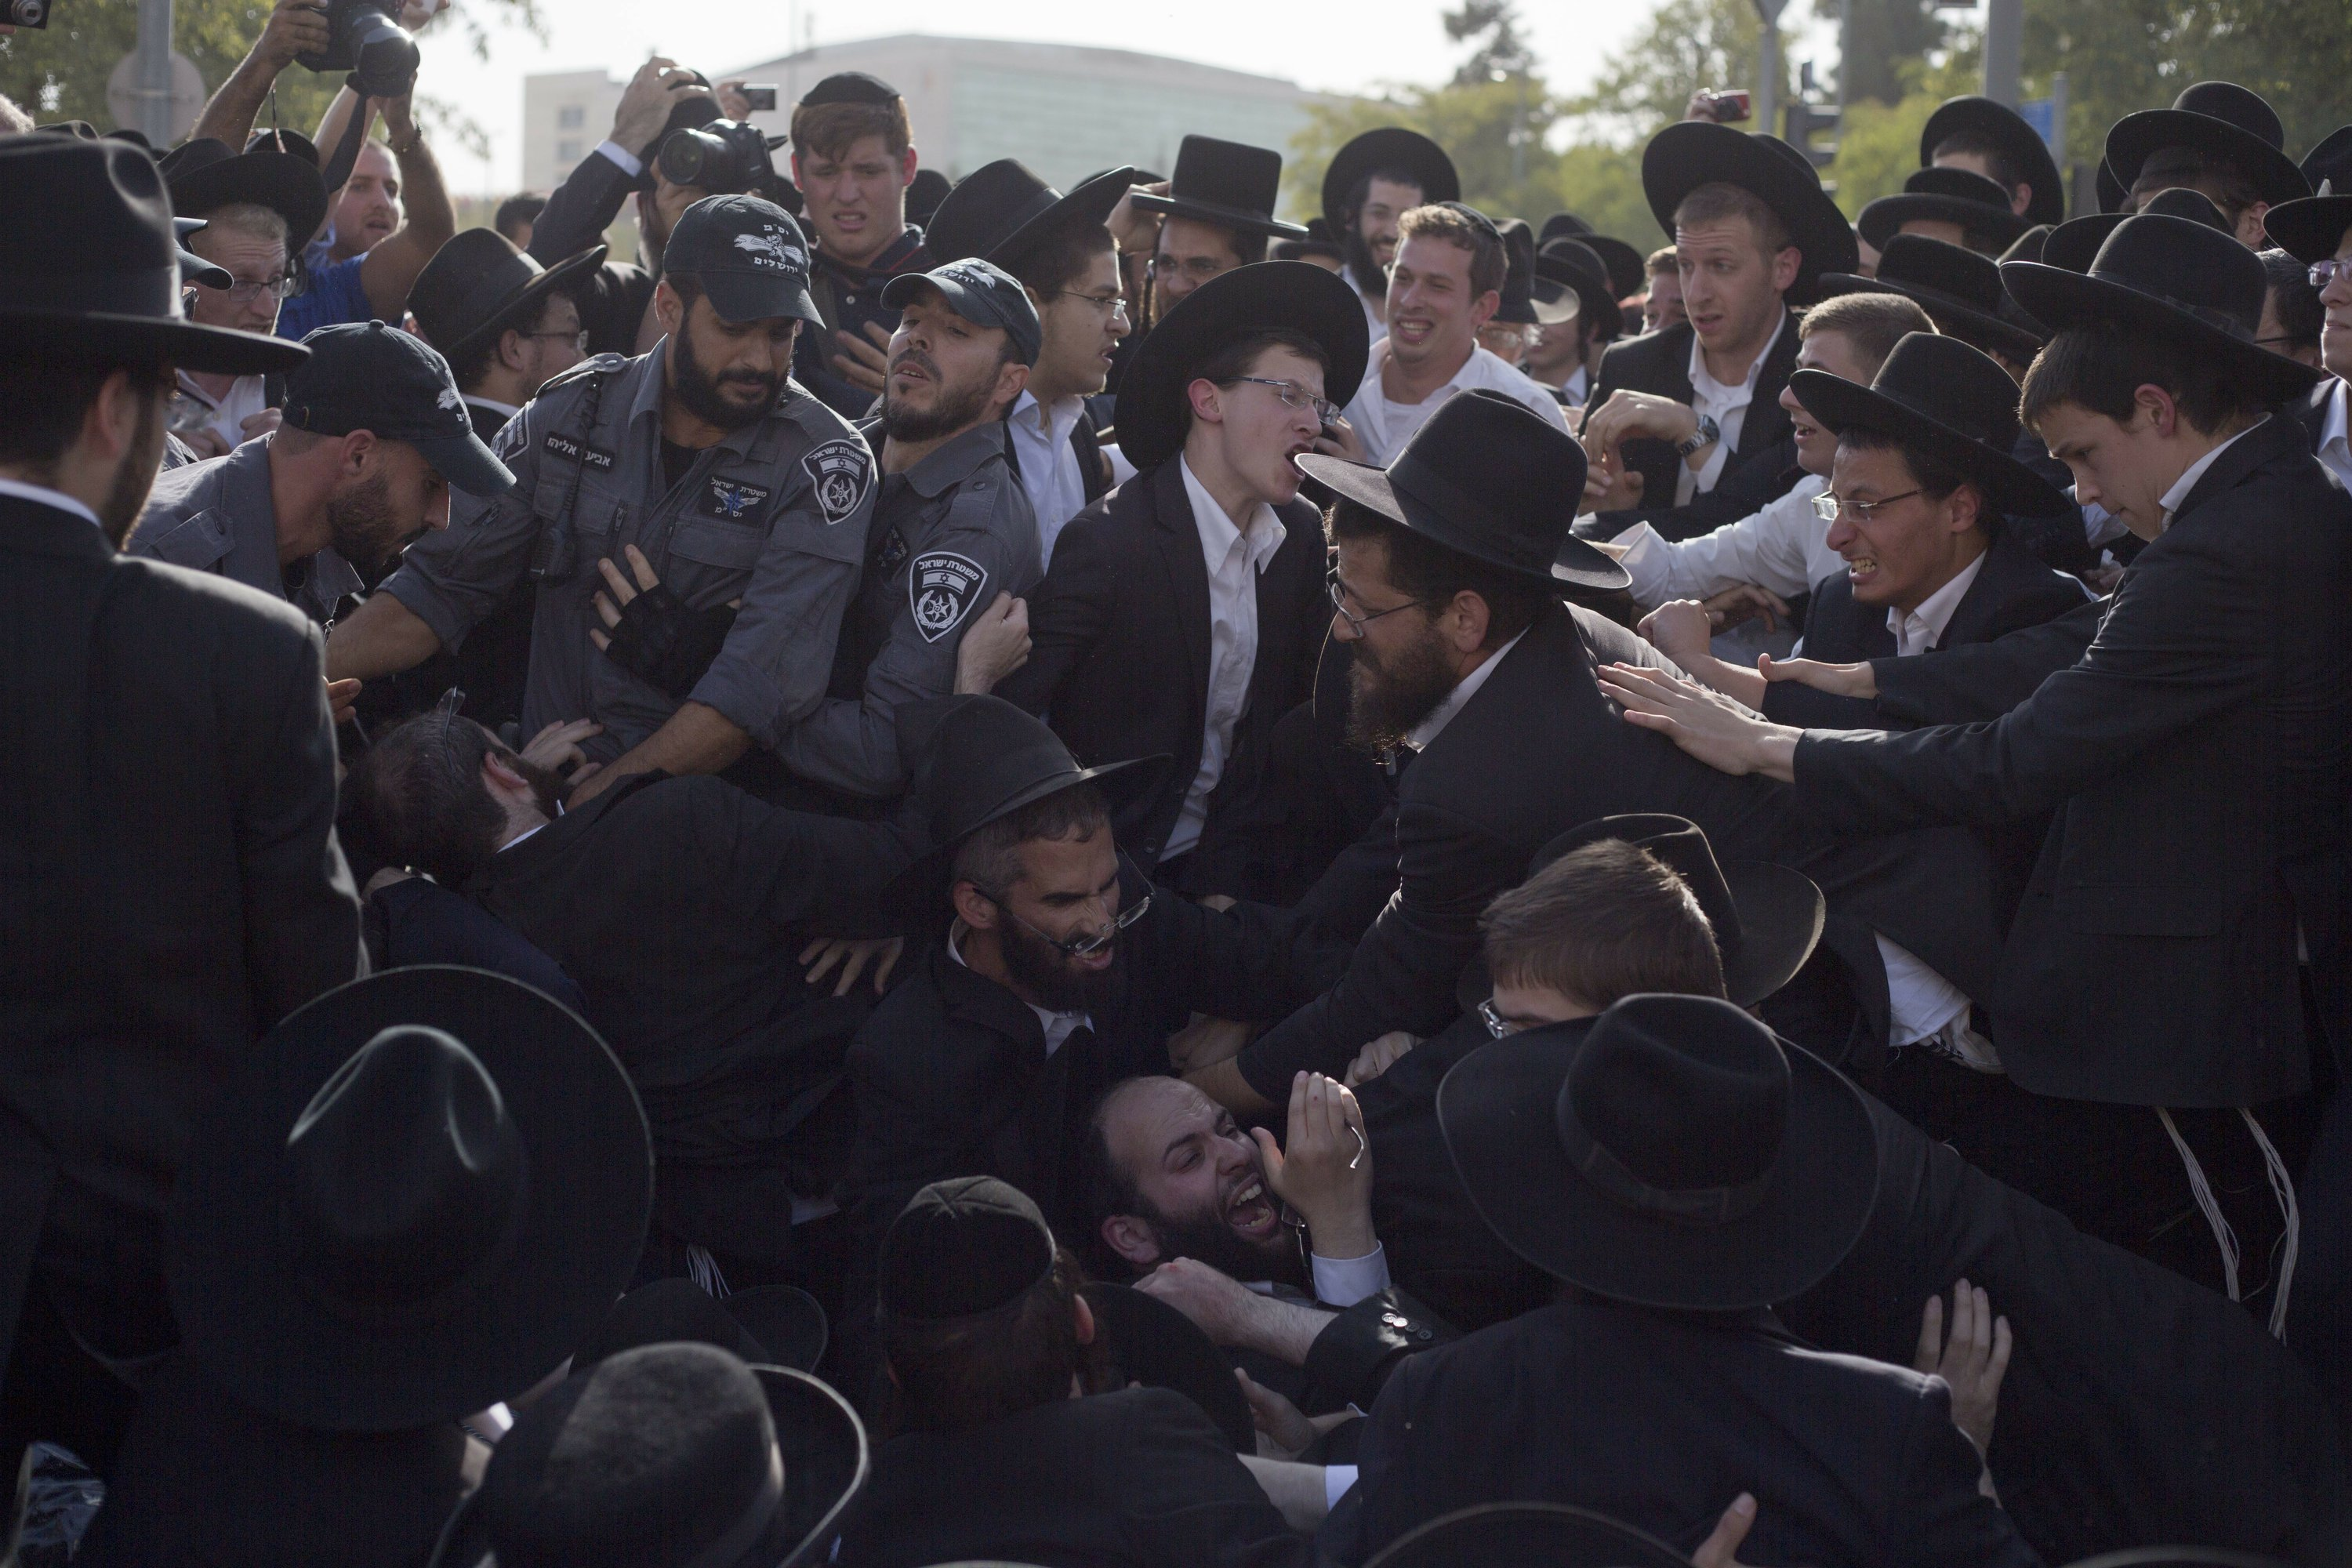 New Israeli election highlights tense ties to ultra-Orthodox